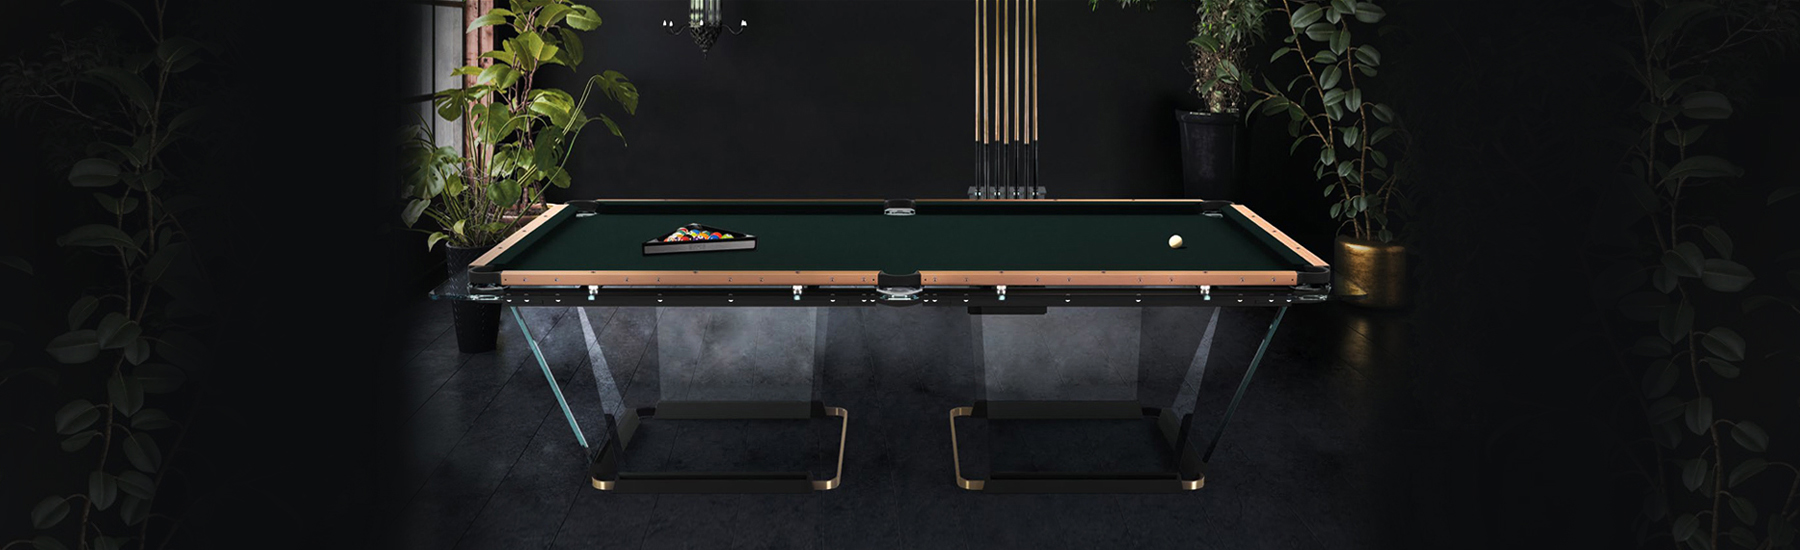 T1 Pool Table & More Game Tables